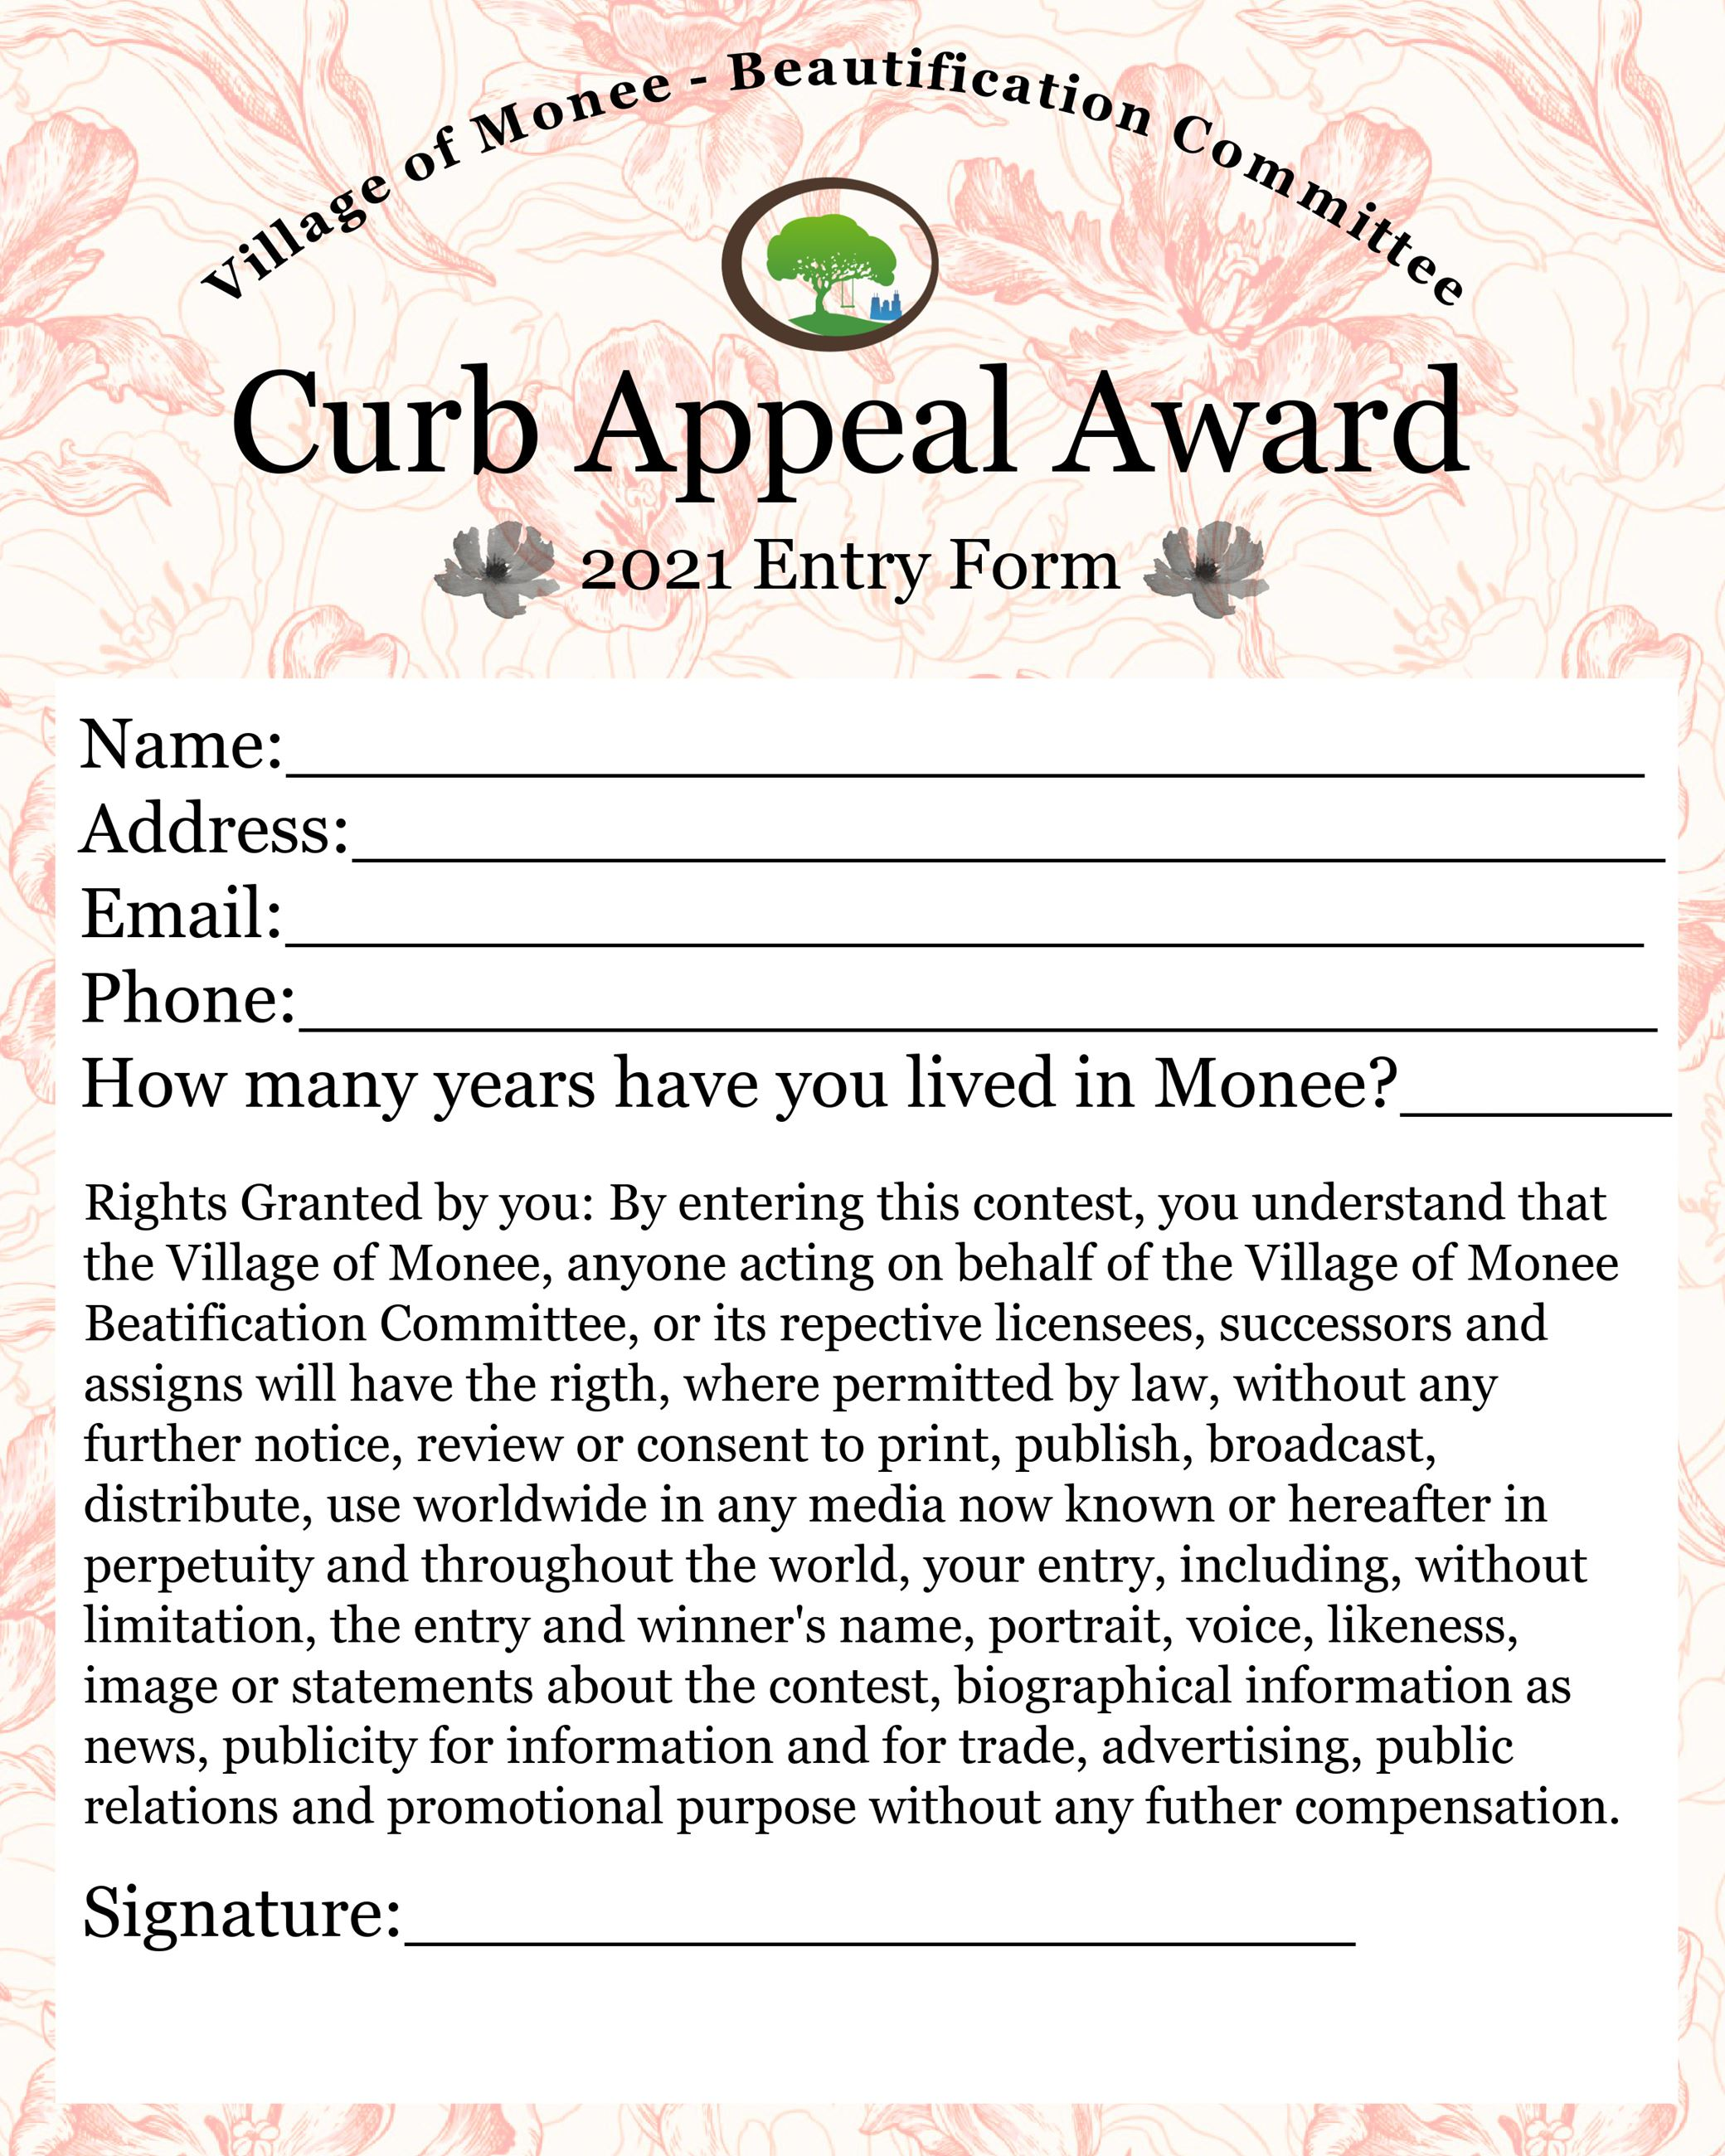 2021 Curb Appeal entry form